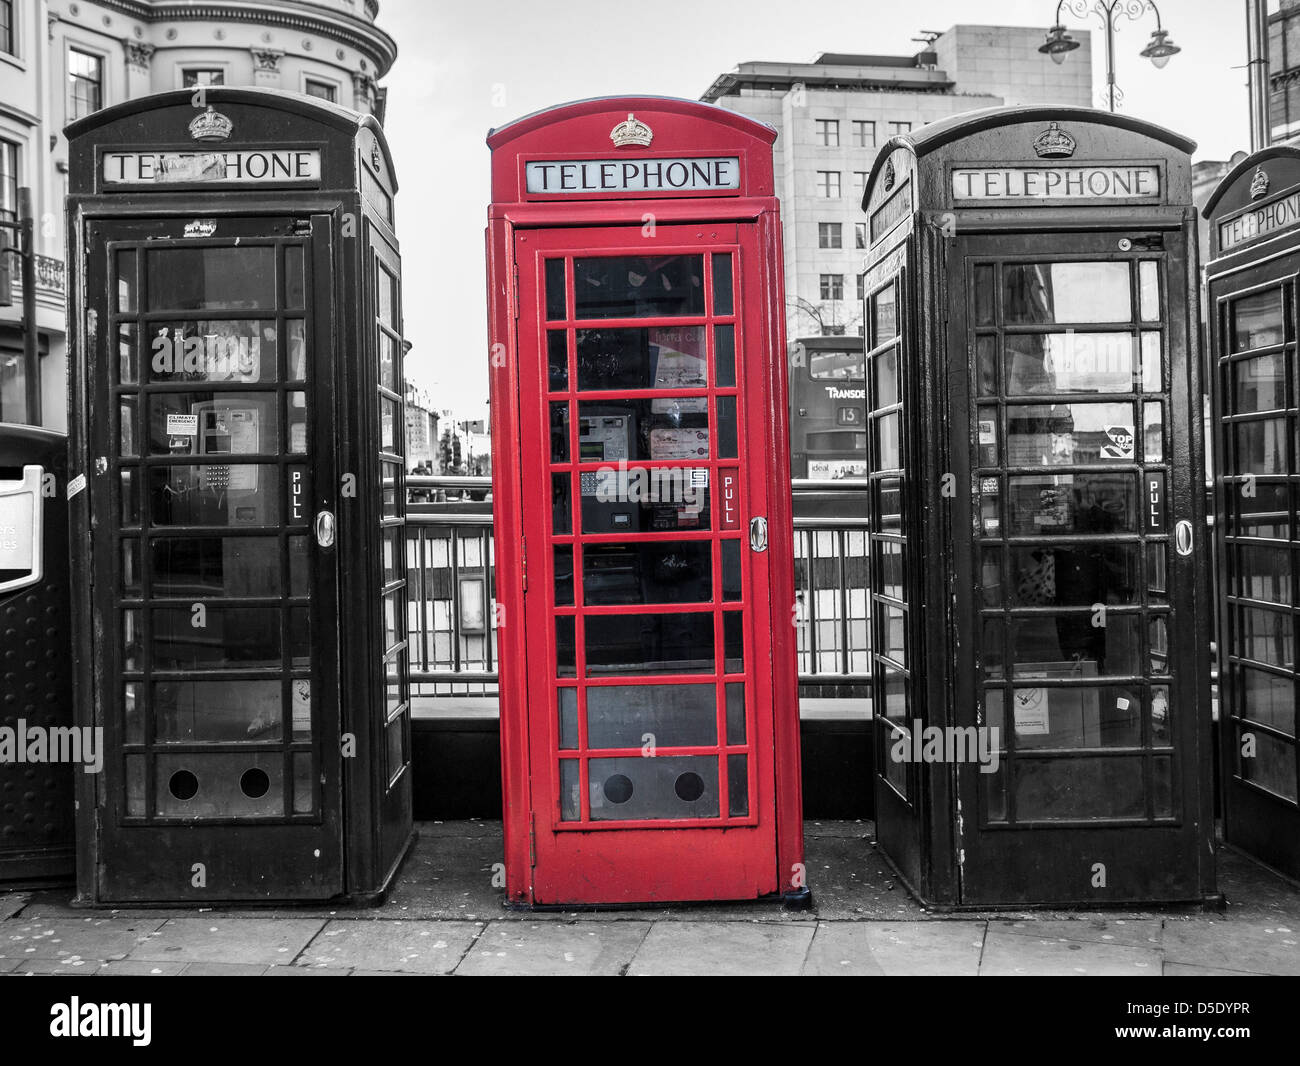 Telephone Boxes in central London - Stock Image